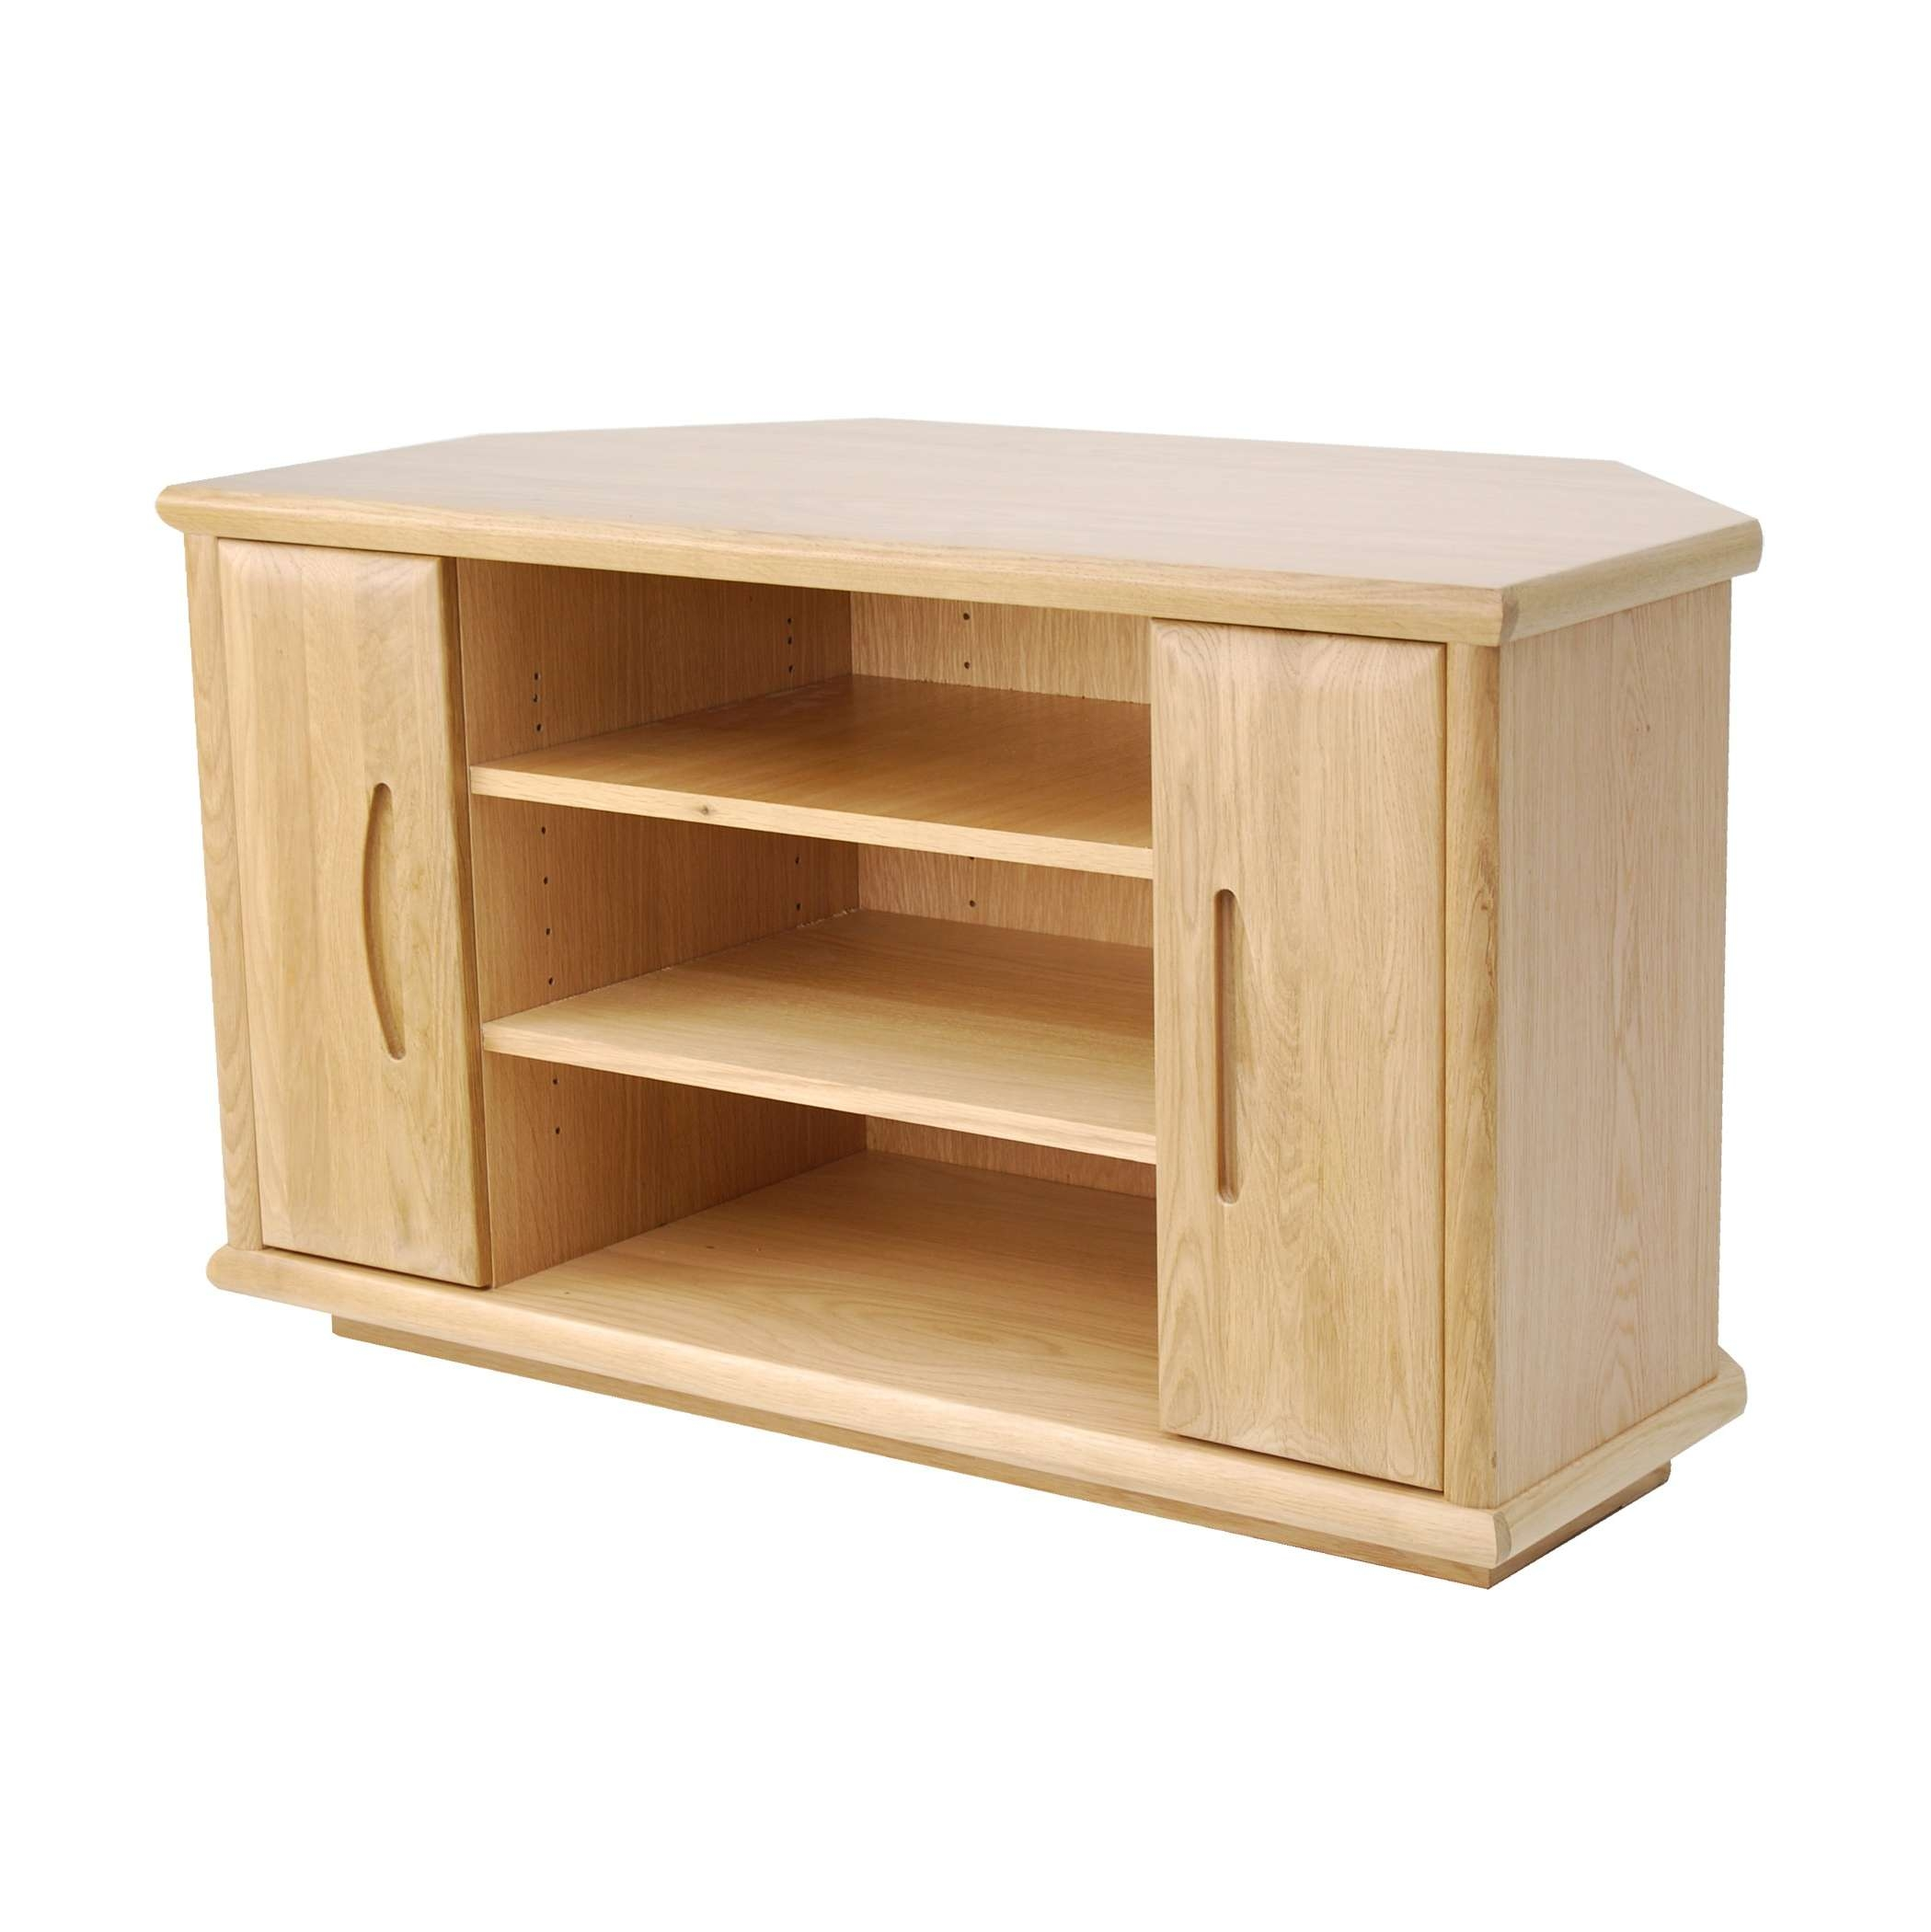 Oak Corner Tv Stand | Gola Furniture Uk Intended For Small Oak Corner Tv Stands (View 9 of 15)